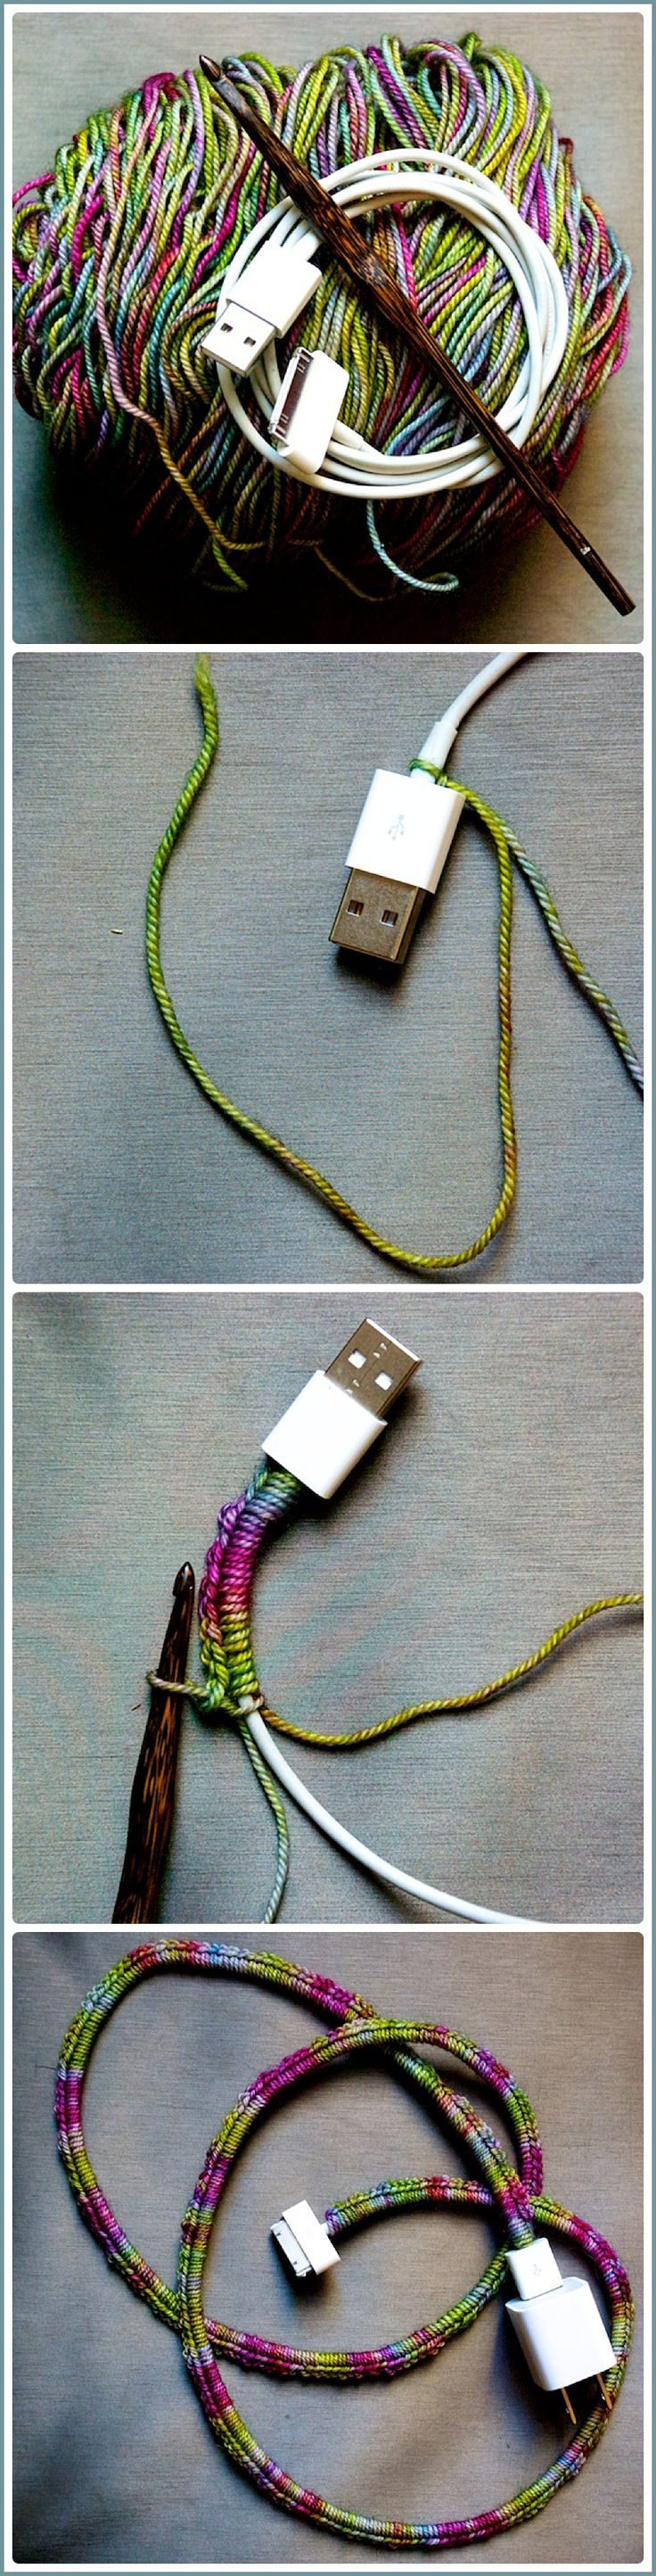 Single crochet around your charger cord - no one will mistake it for theirs anymore! http://throughtheloops.typepad.com/through_the_loops/2014/10/happy-friday.html